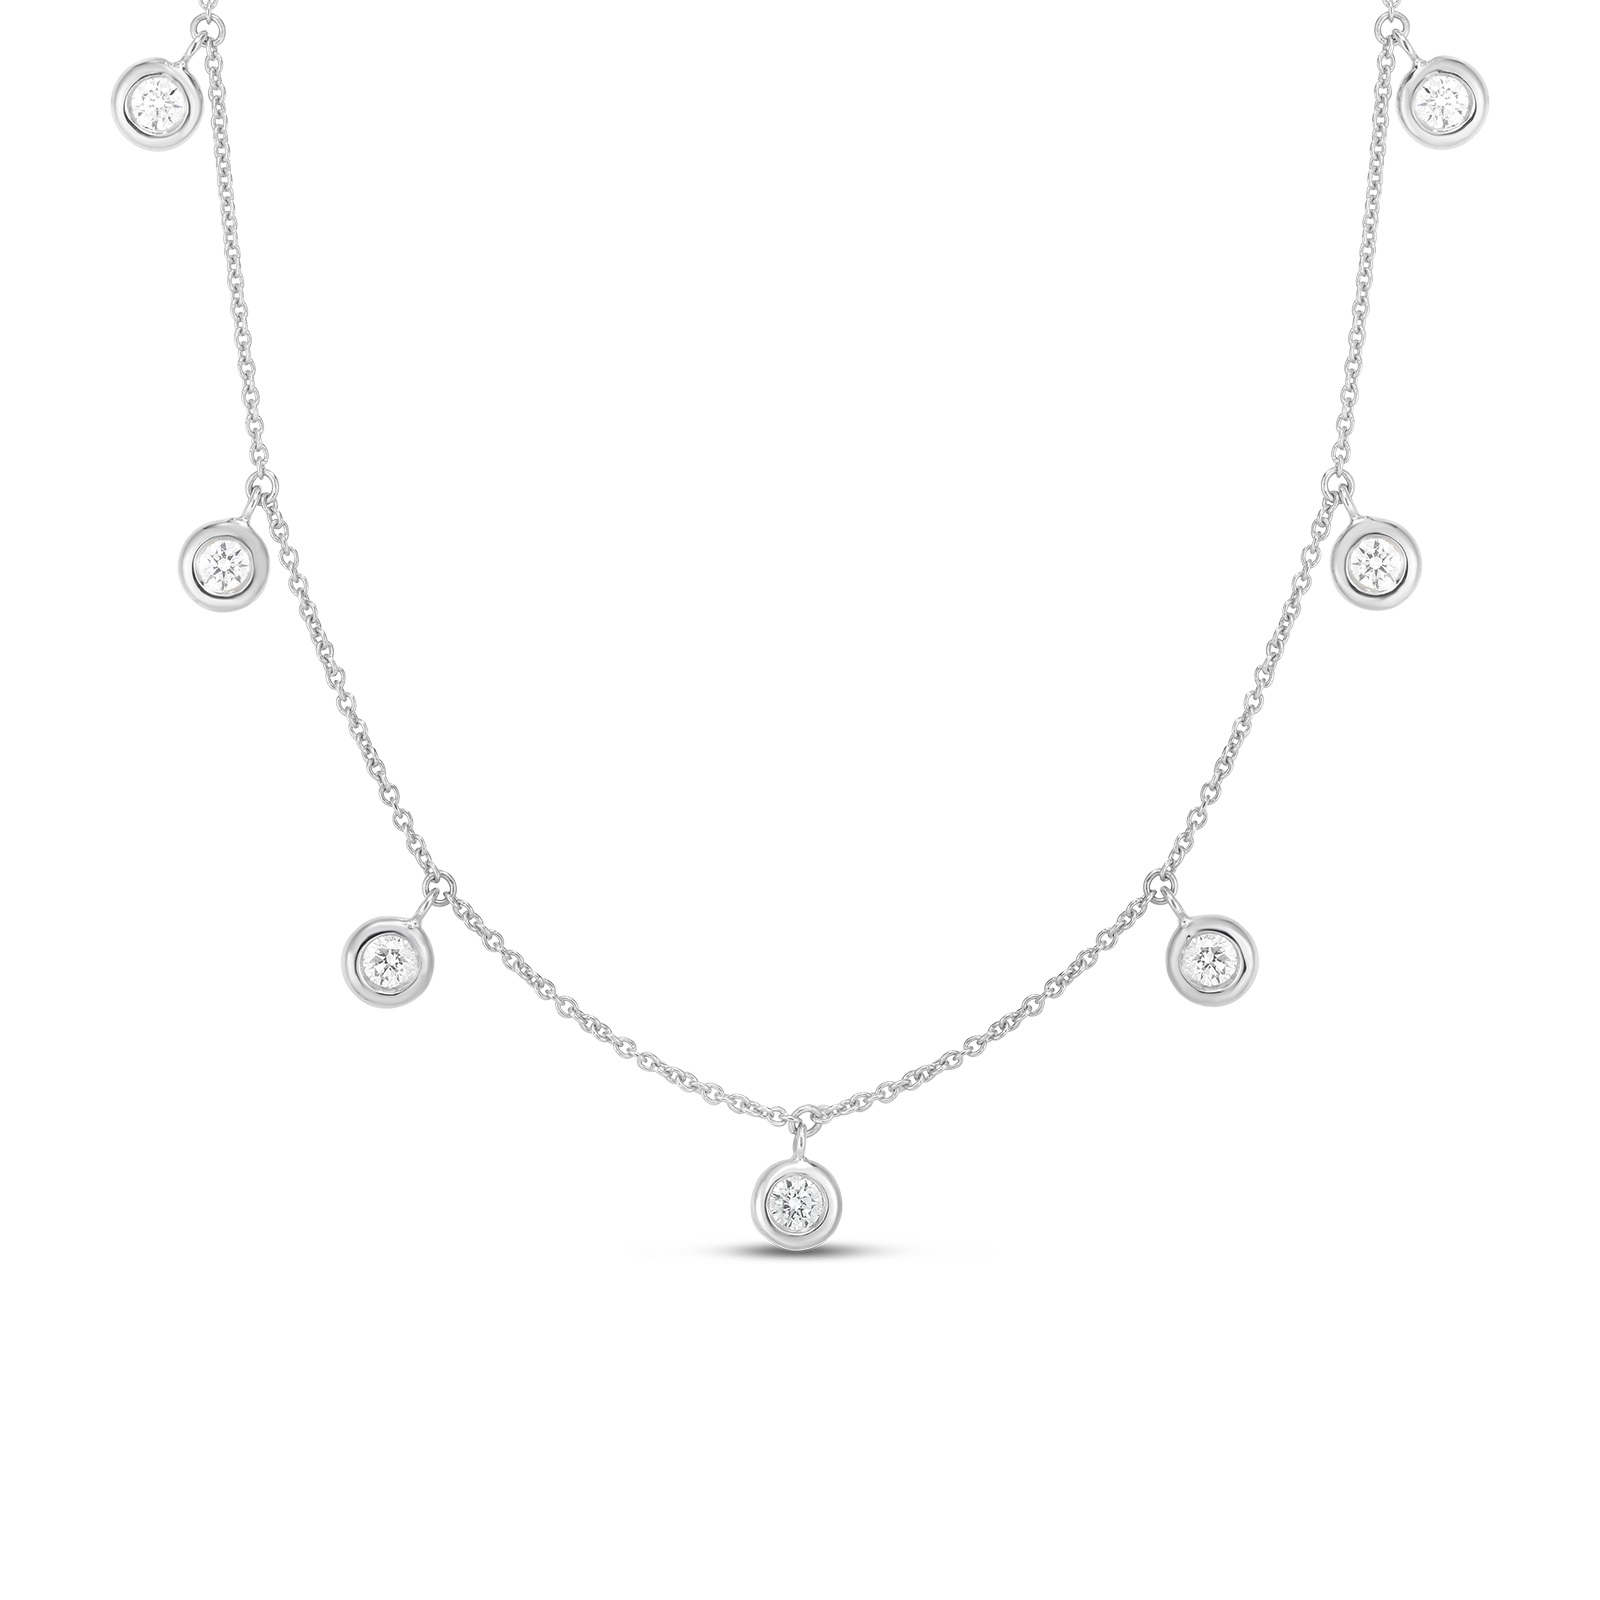 Roberto Coin 18K White Gold .33cts  Diamond Gold Necklace with Stones 530011AWCHX0